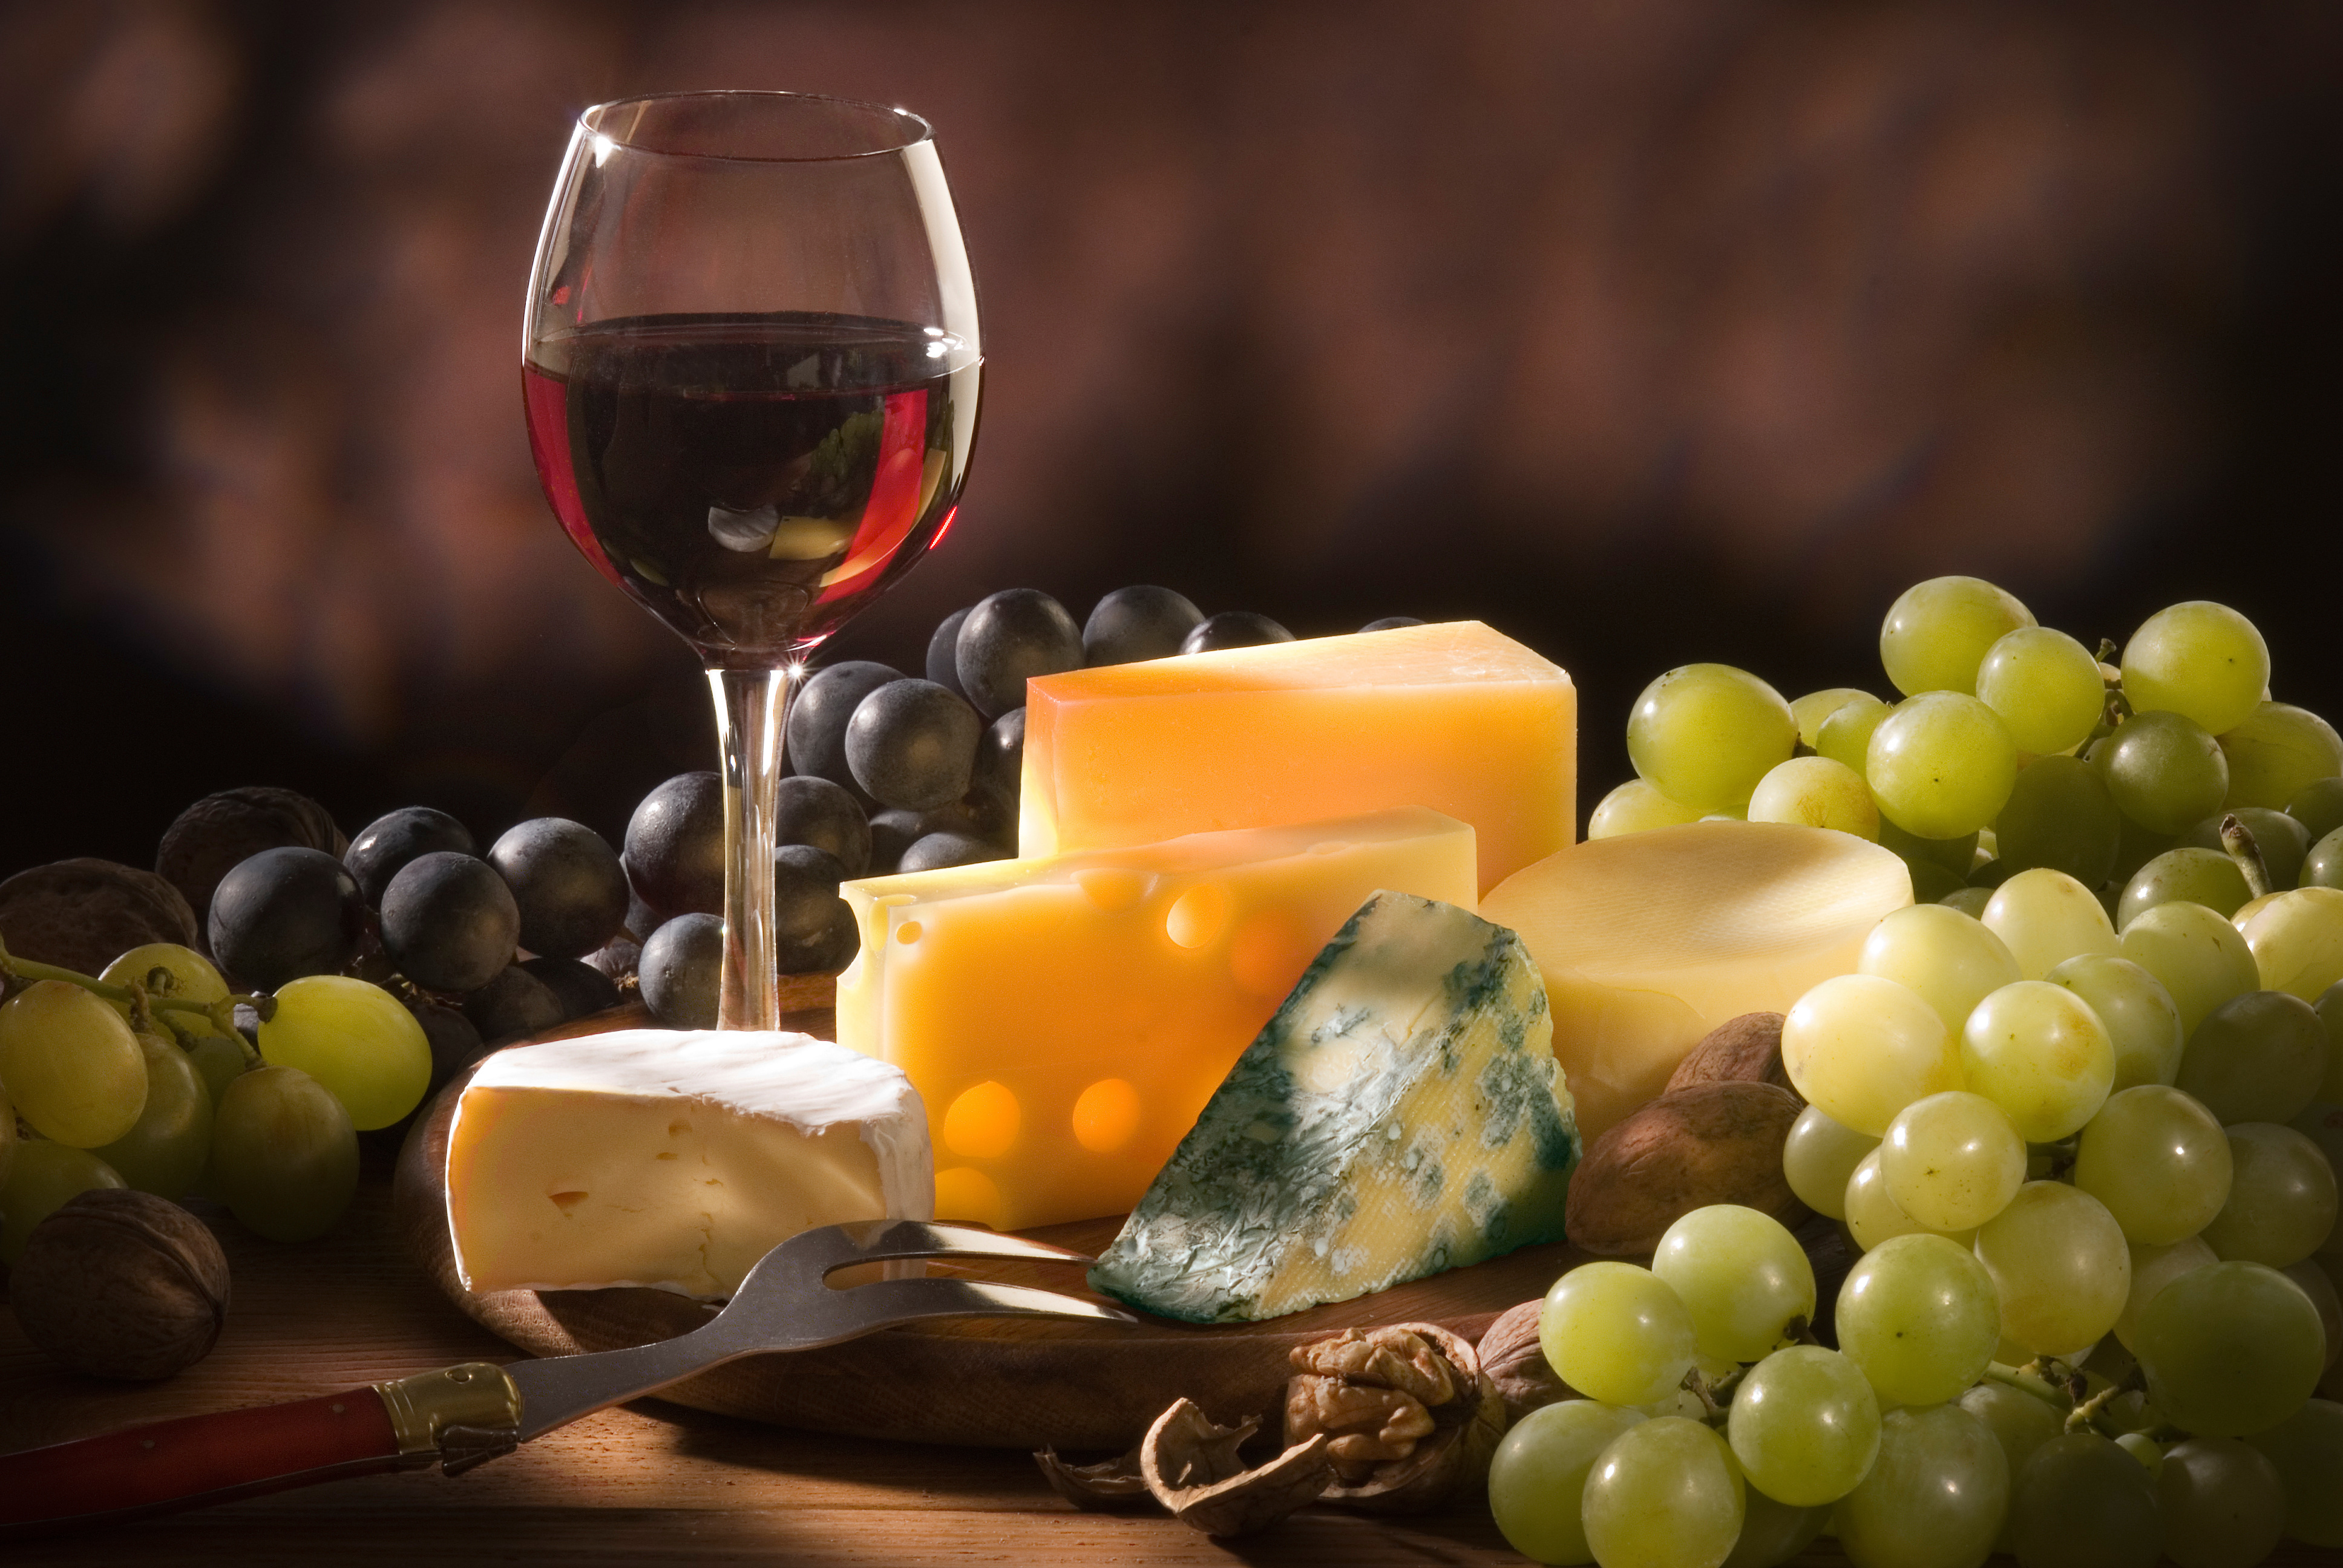 150 Cheese Hd Wallpapers Background Images Wallpaper Abyss